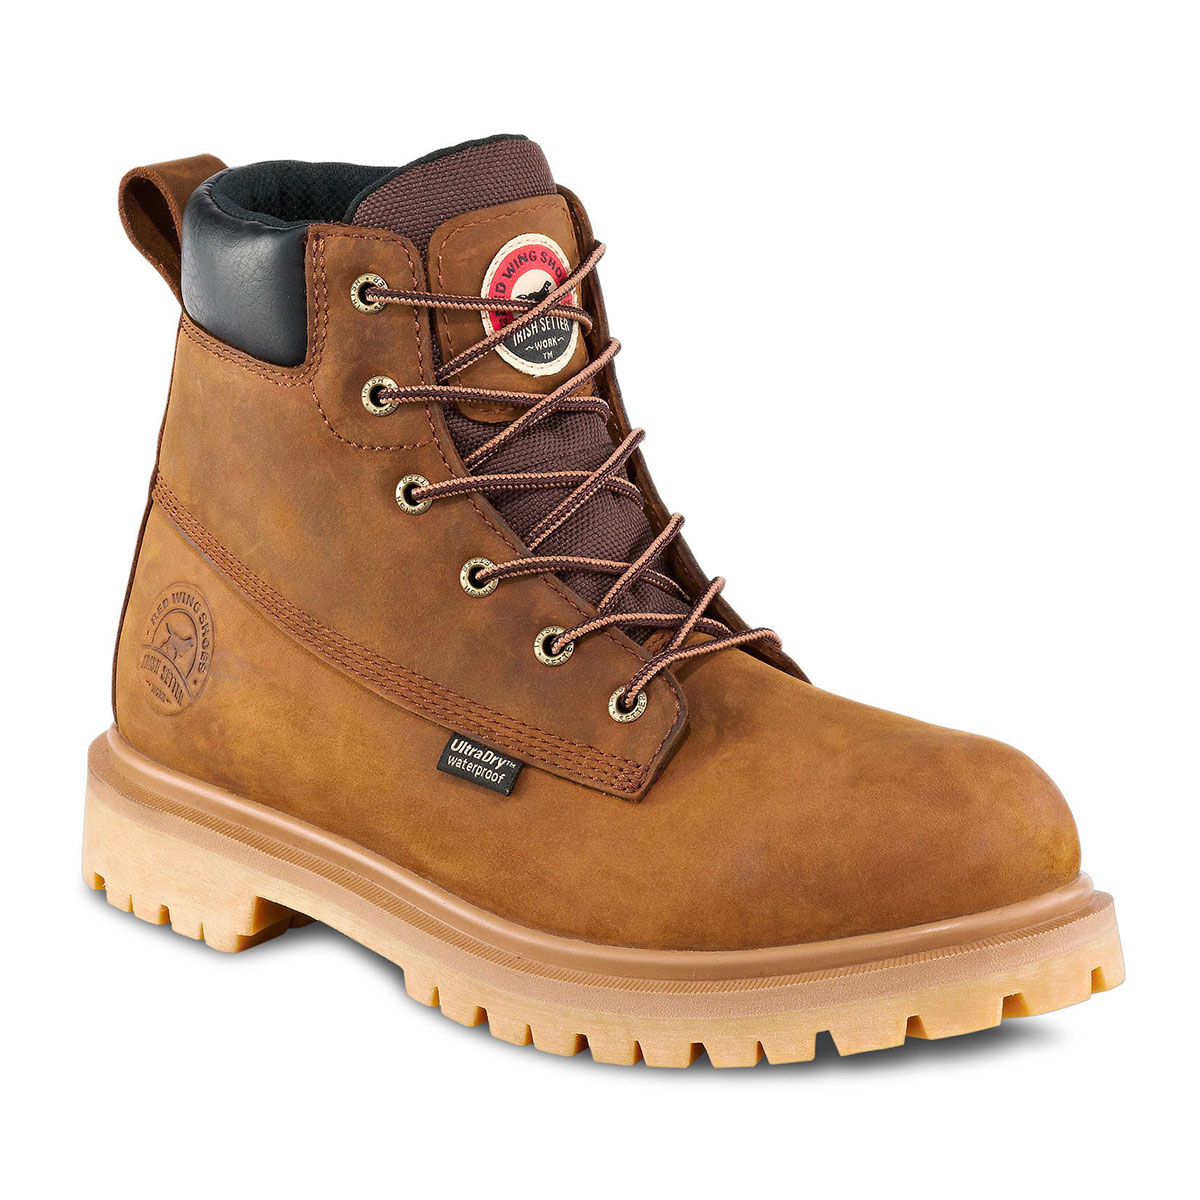 Where To Buy Red Wing Boots pYObBxcc